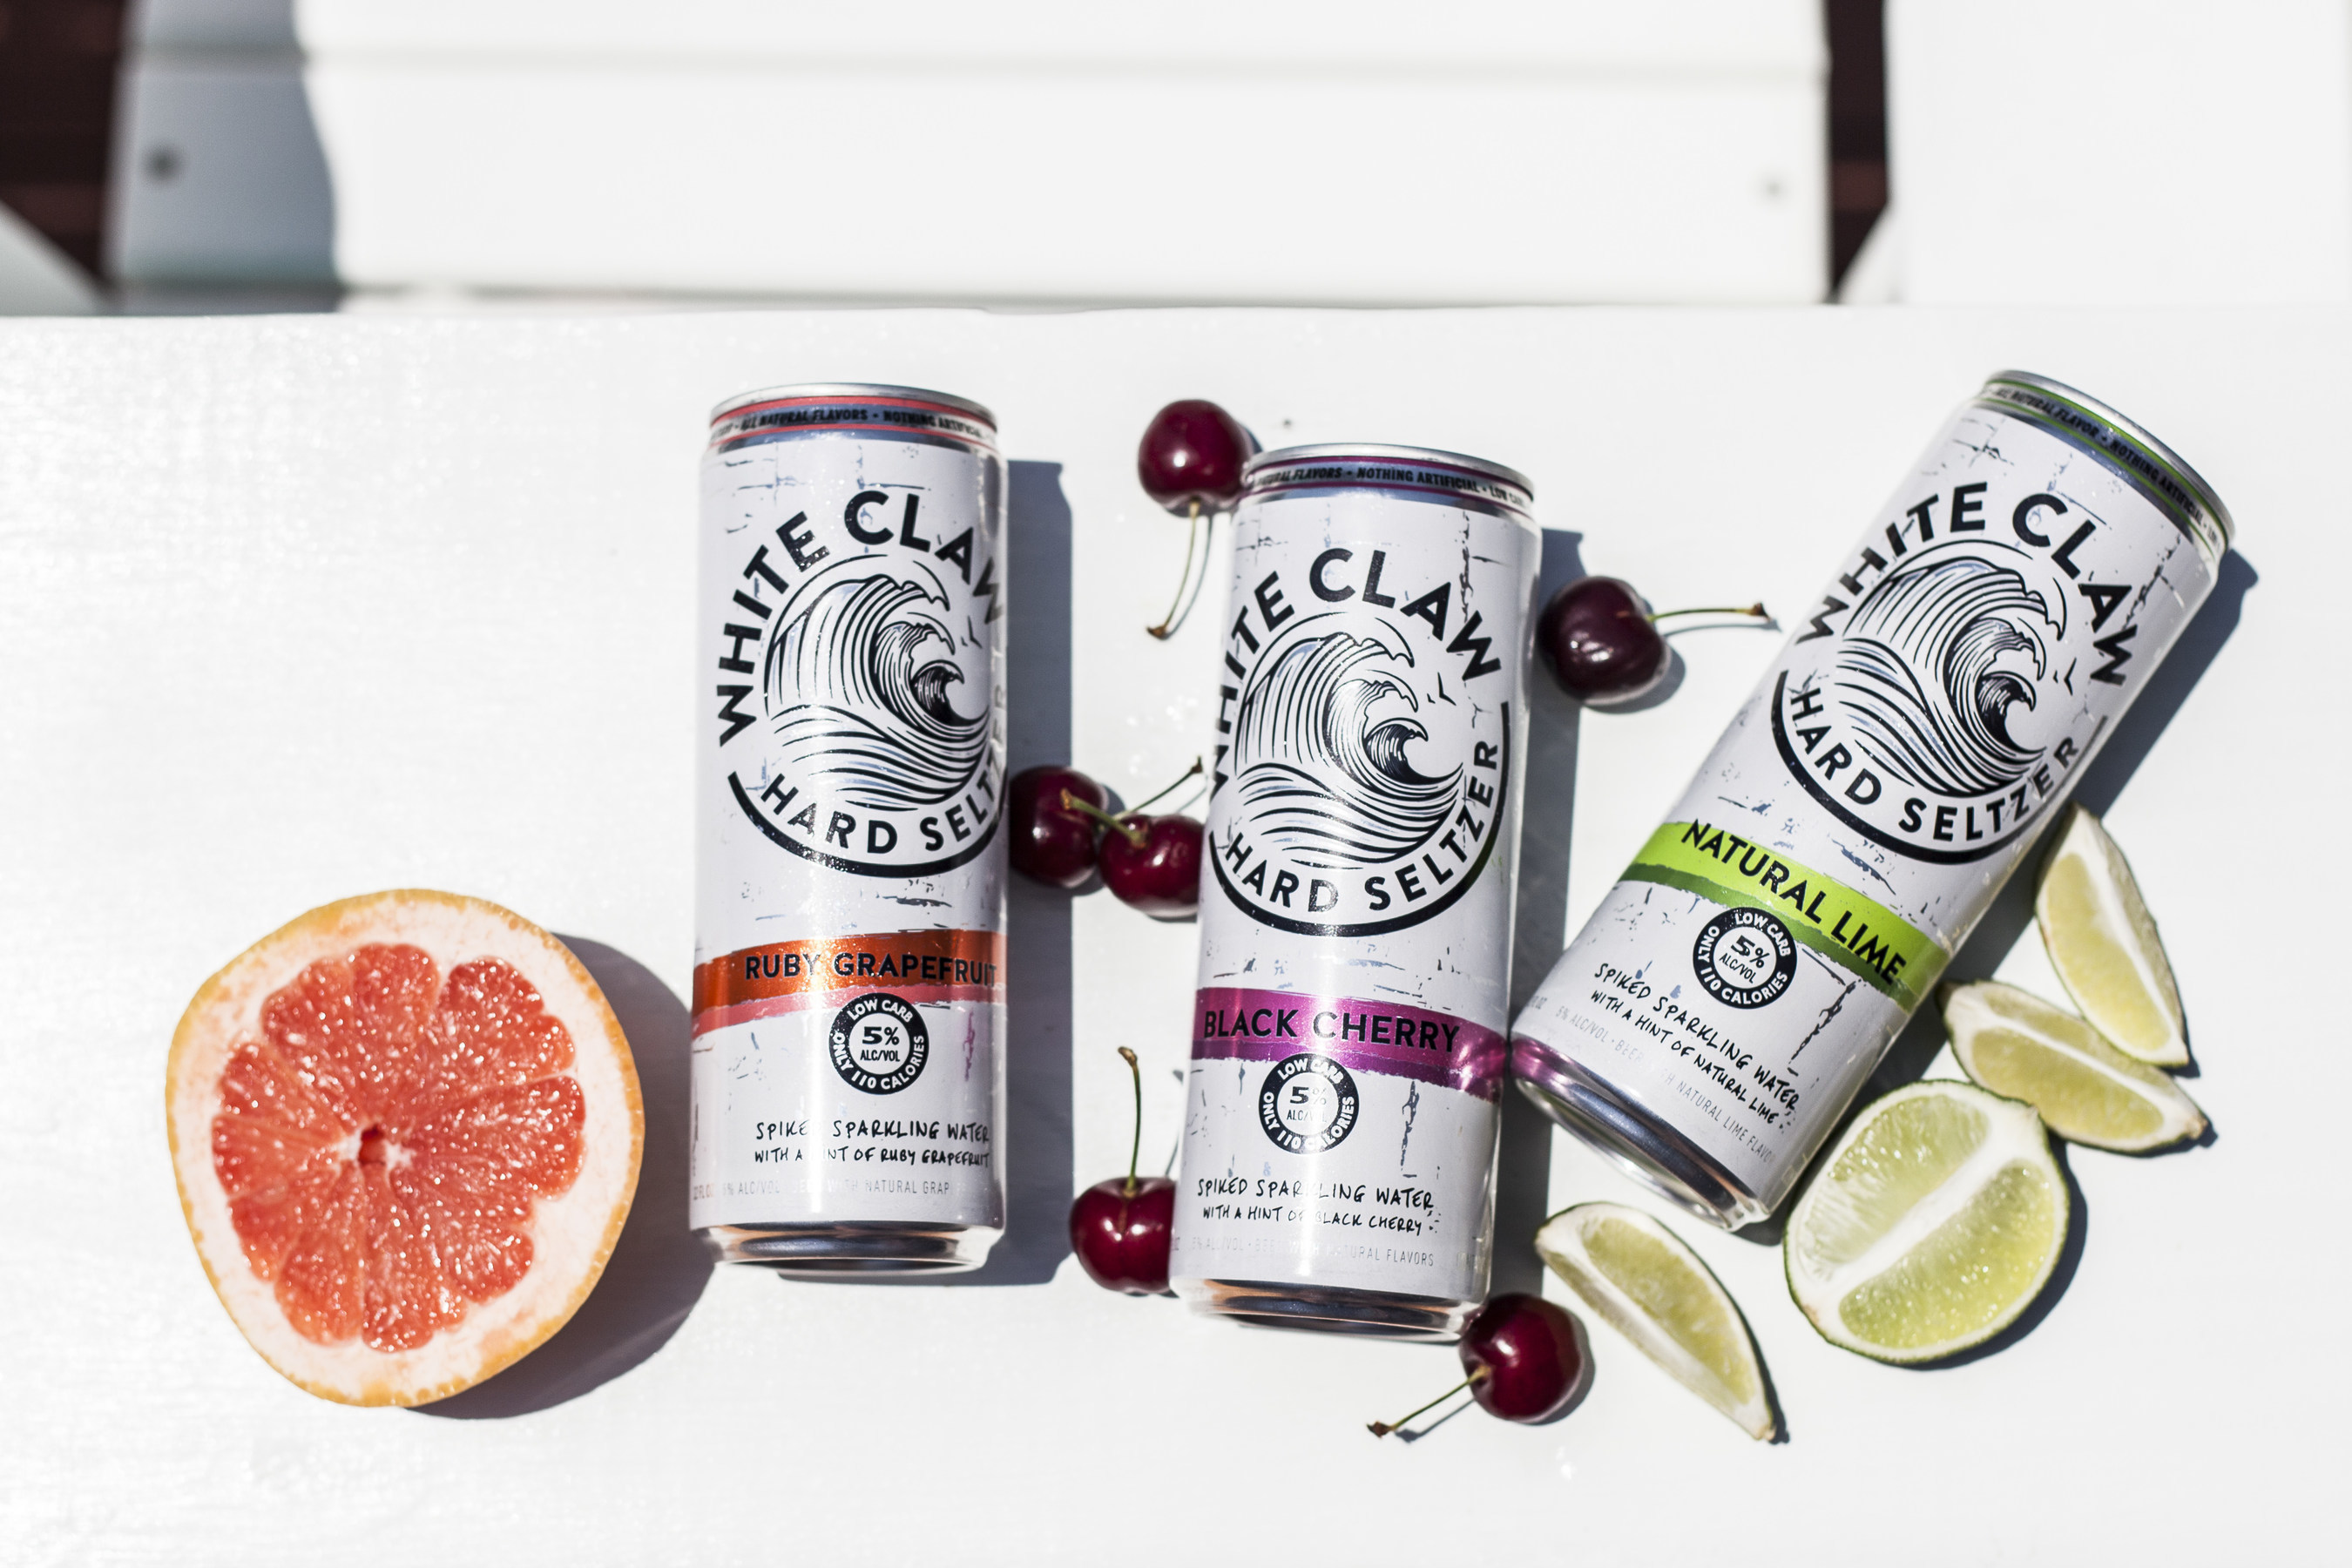 New White Claw Hard Seltzer Offers All-Natural Refreshment